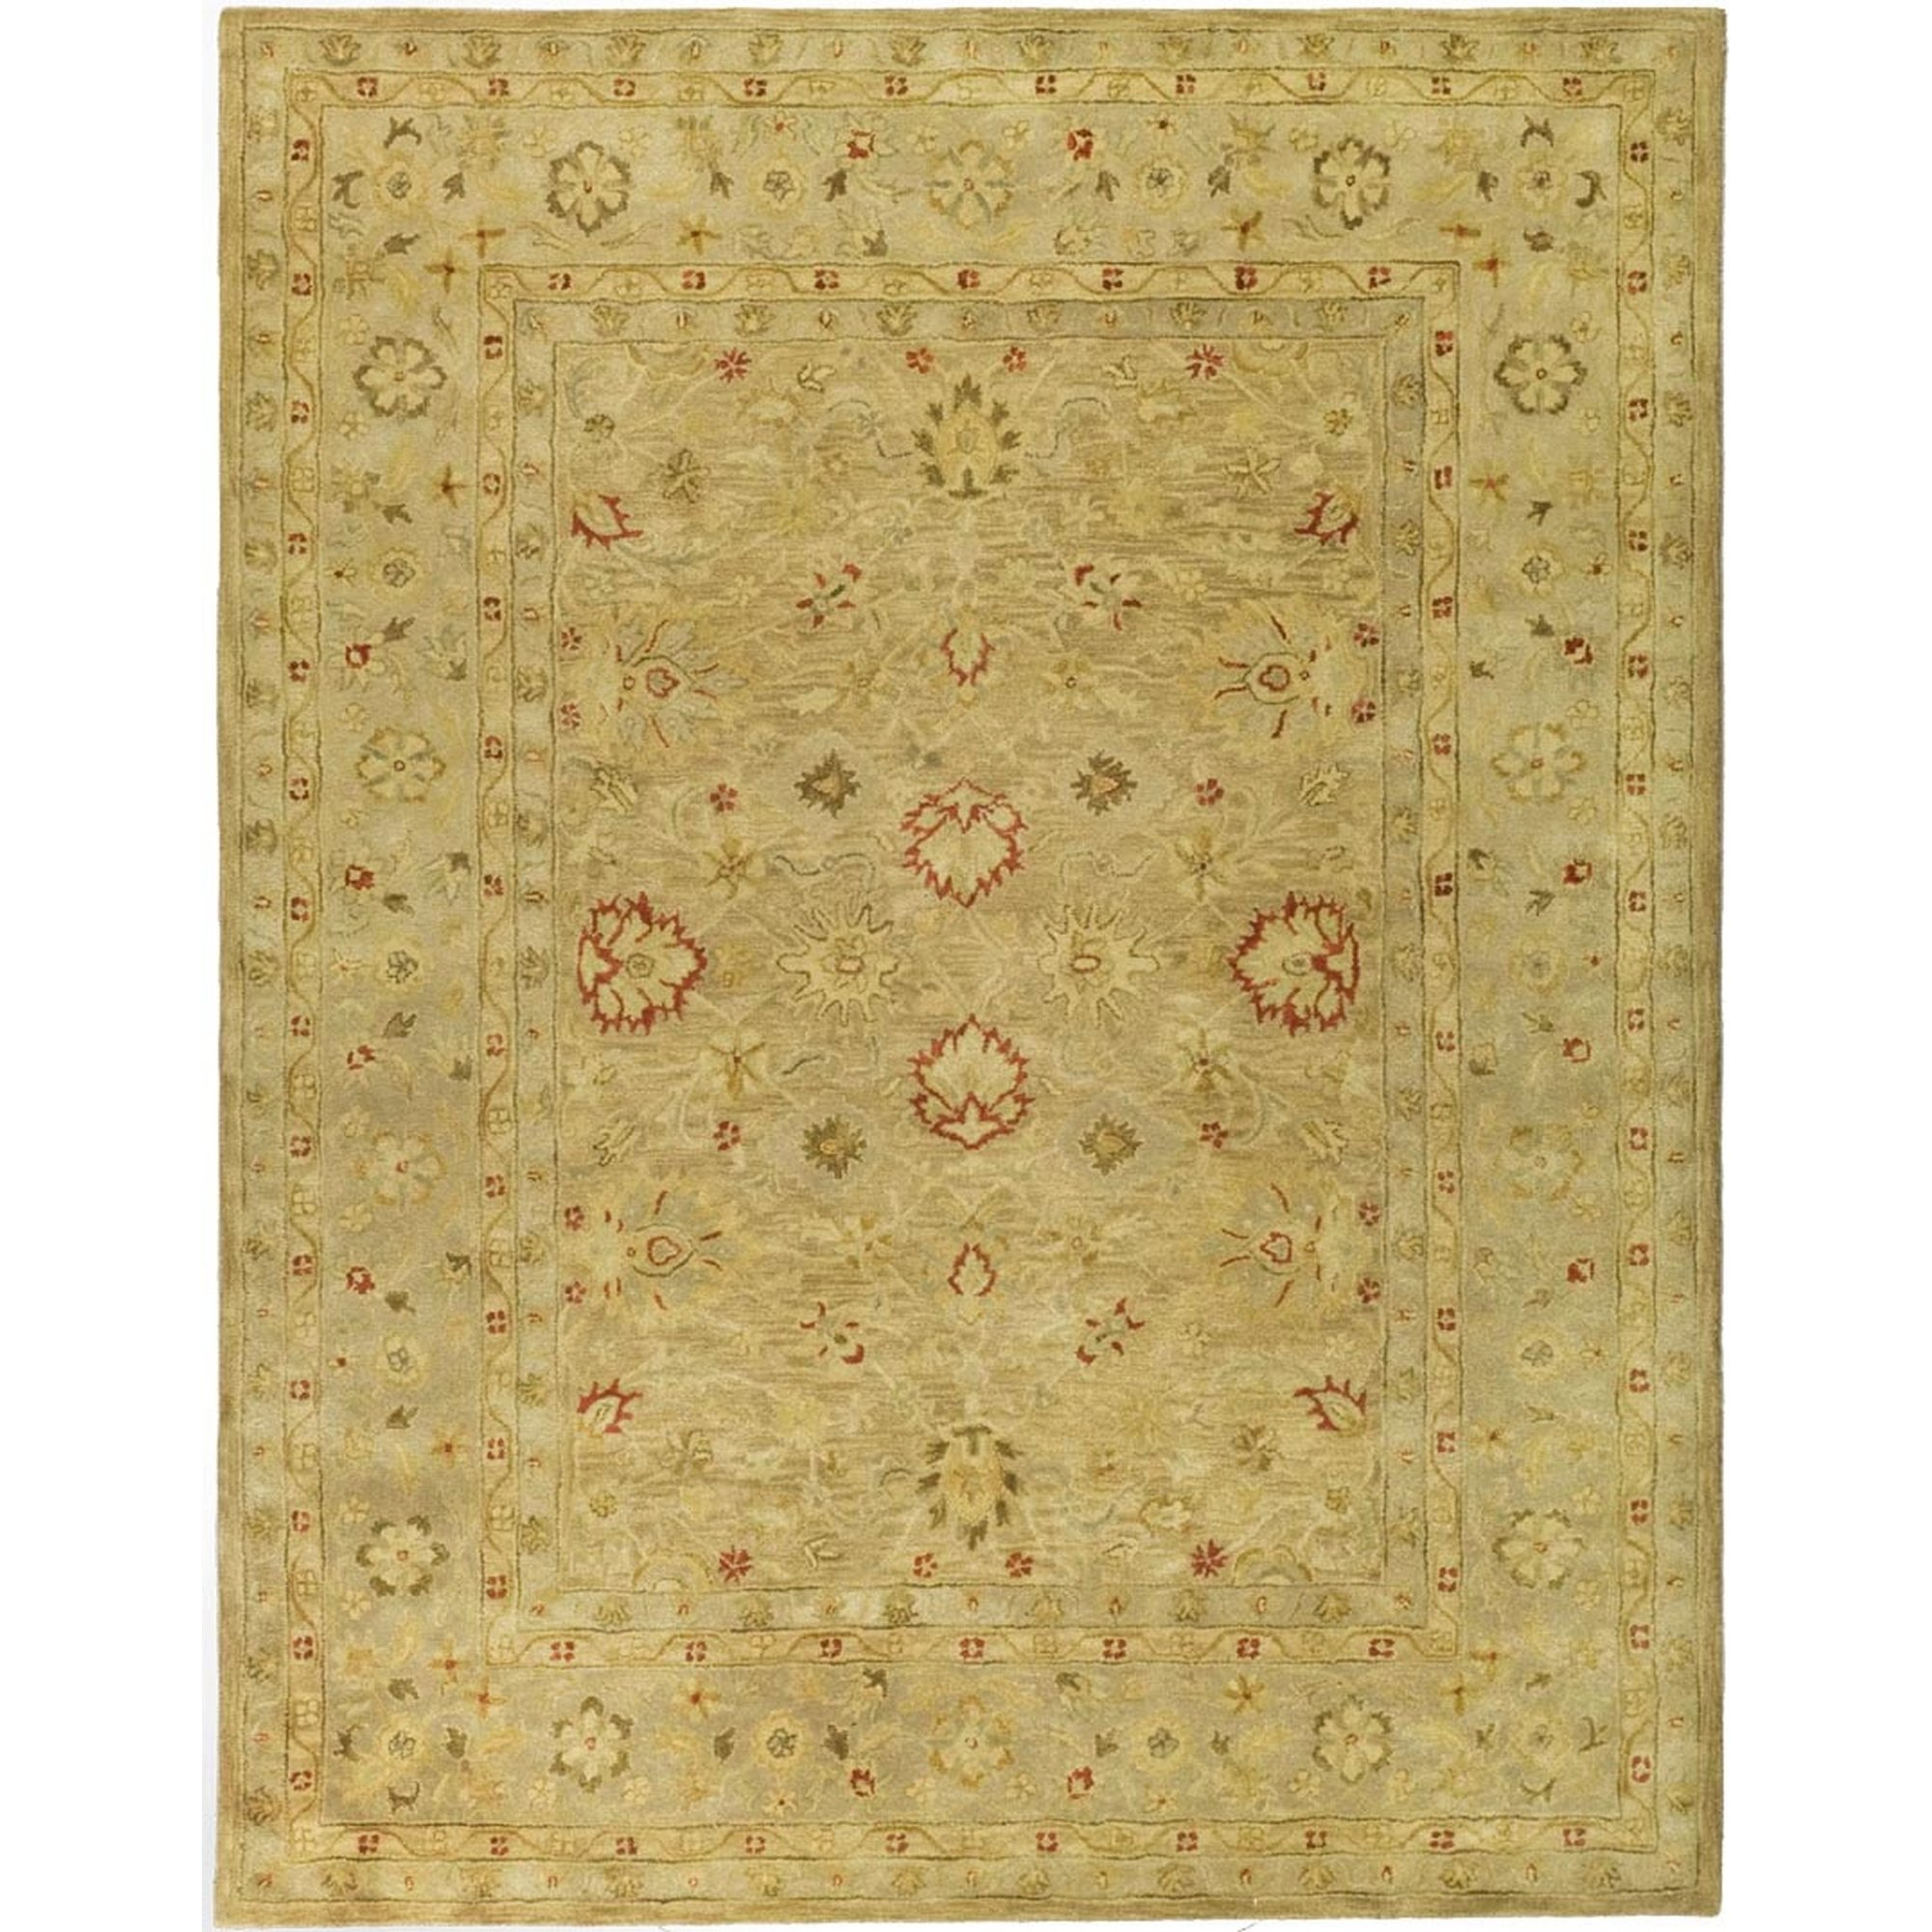 Safavieh Antiquities Collection AT822B Handmade Traditional Oriental Brown and Beige Wool Area Rug (7'6'' x 9'6'') by Safavieh (Image #1)